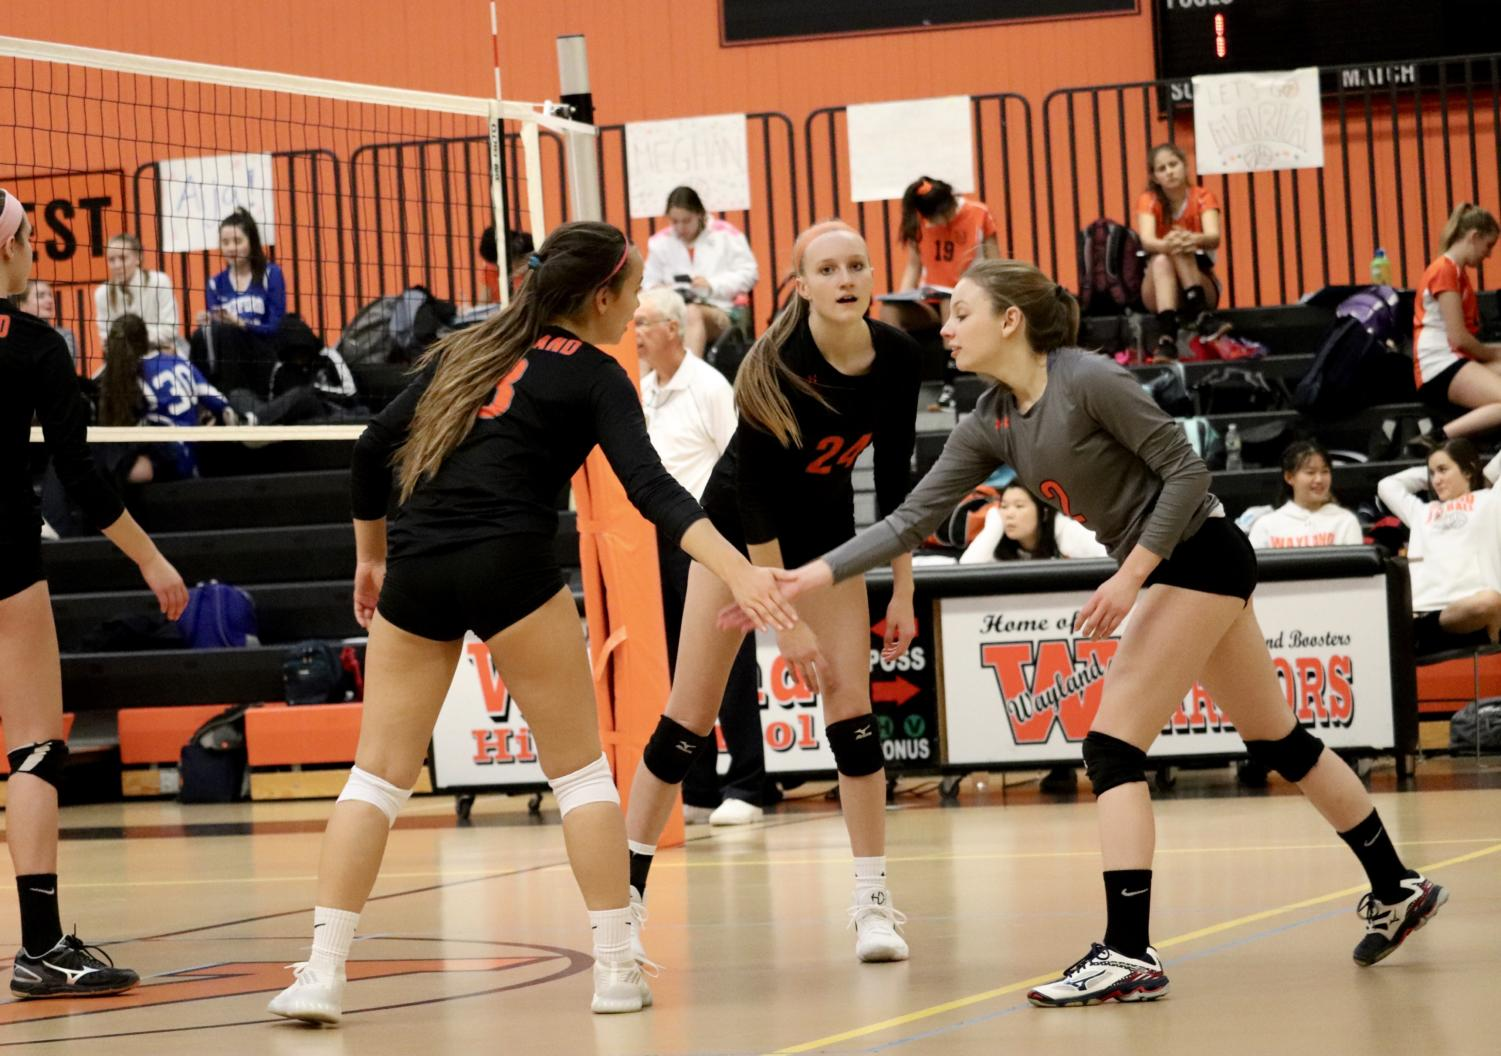 Captains+junior+Ava+Tang+and+senior+Noelle+McGah+high-five+junior+Izzy+VanRooyen+during+a+game+against+Bedford.+The+No.+19-seeded+girls%27+volleyball+team+defeated+No.+2+Danvers+in+the+first+round+of+playoffs.+%E2%80%9COver+time%2C+the+volleyball+program+has+been+getting+stronger%2C%E2%80%9D+Tang+said.+%0A